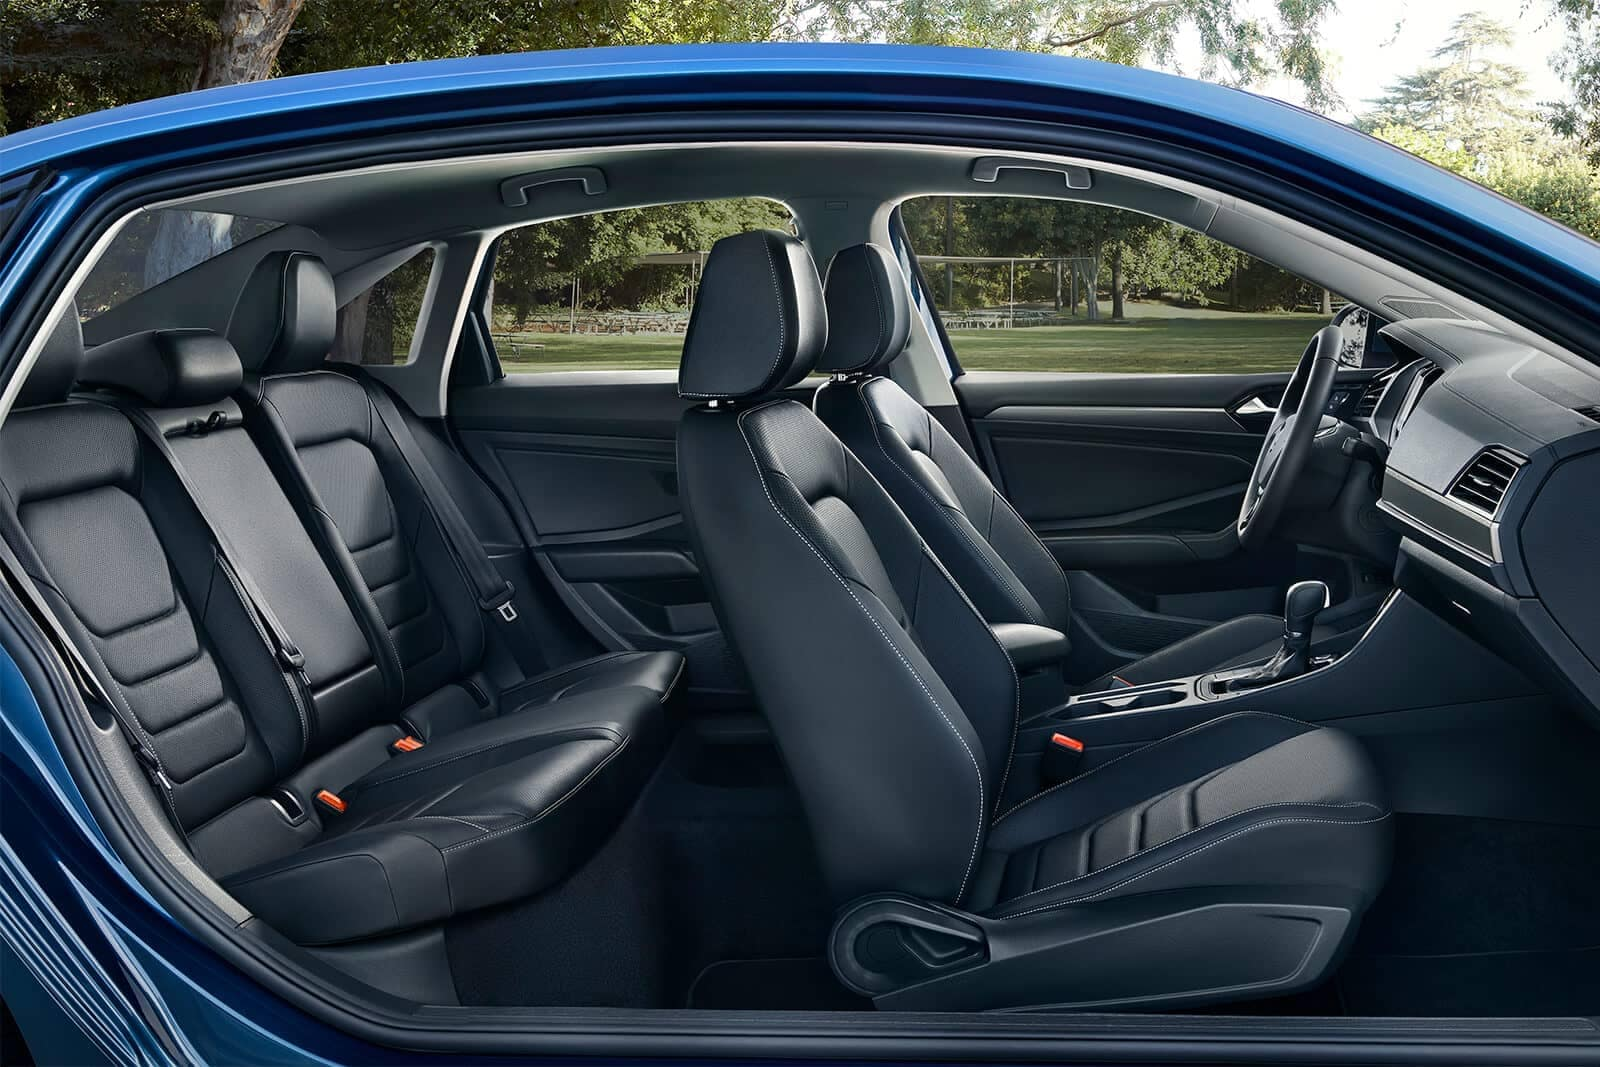 2019 Volkswagen Jetta SEL Premium in titan black leather interior seating